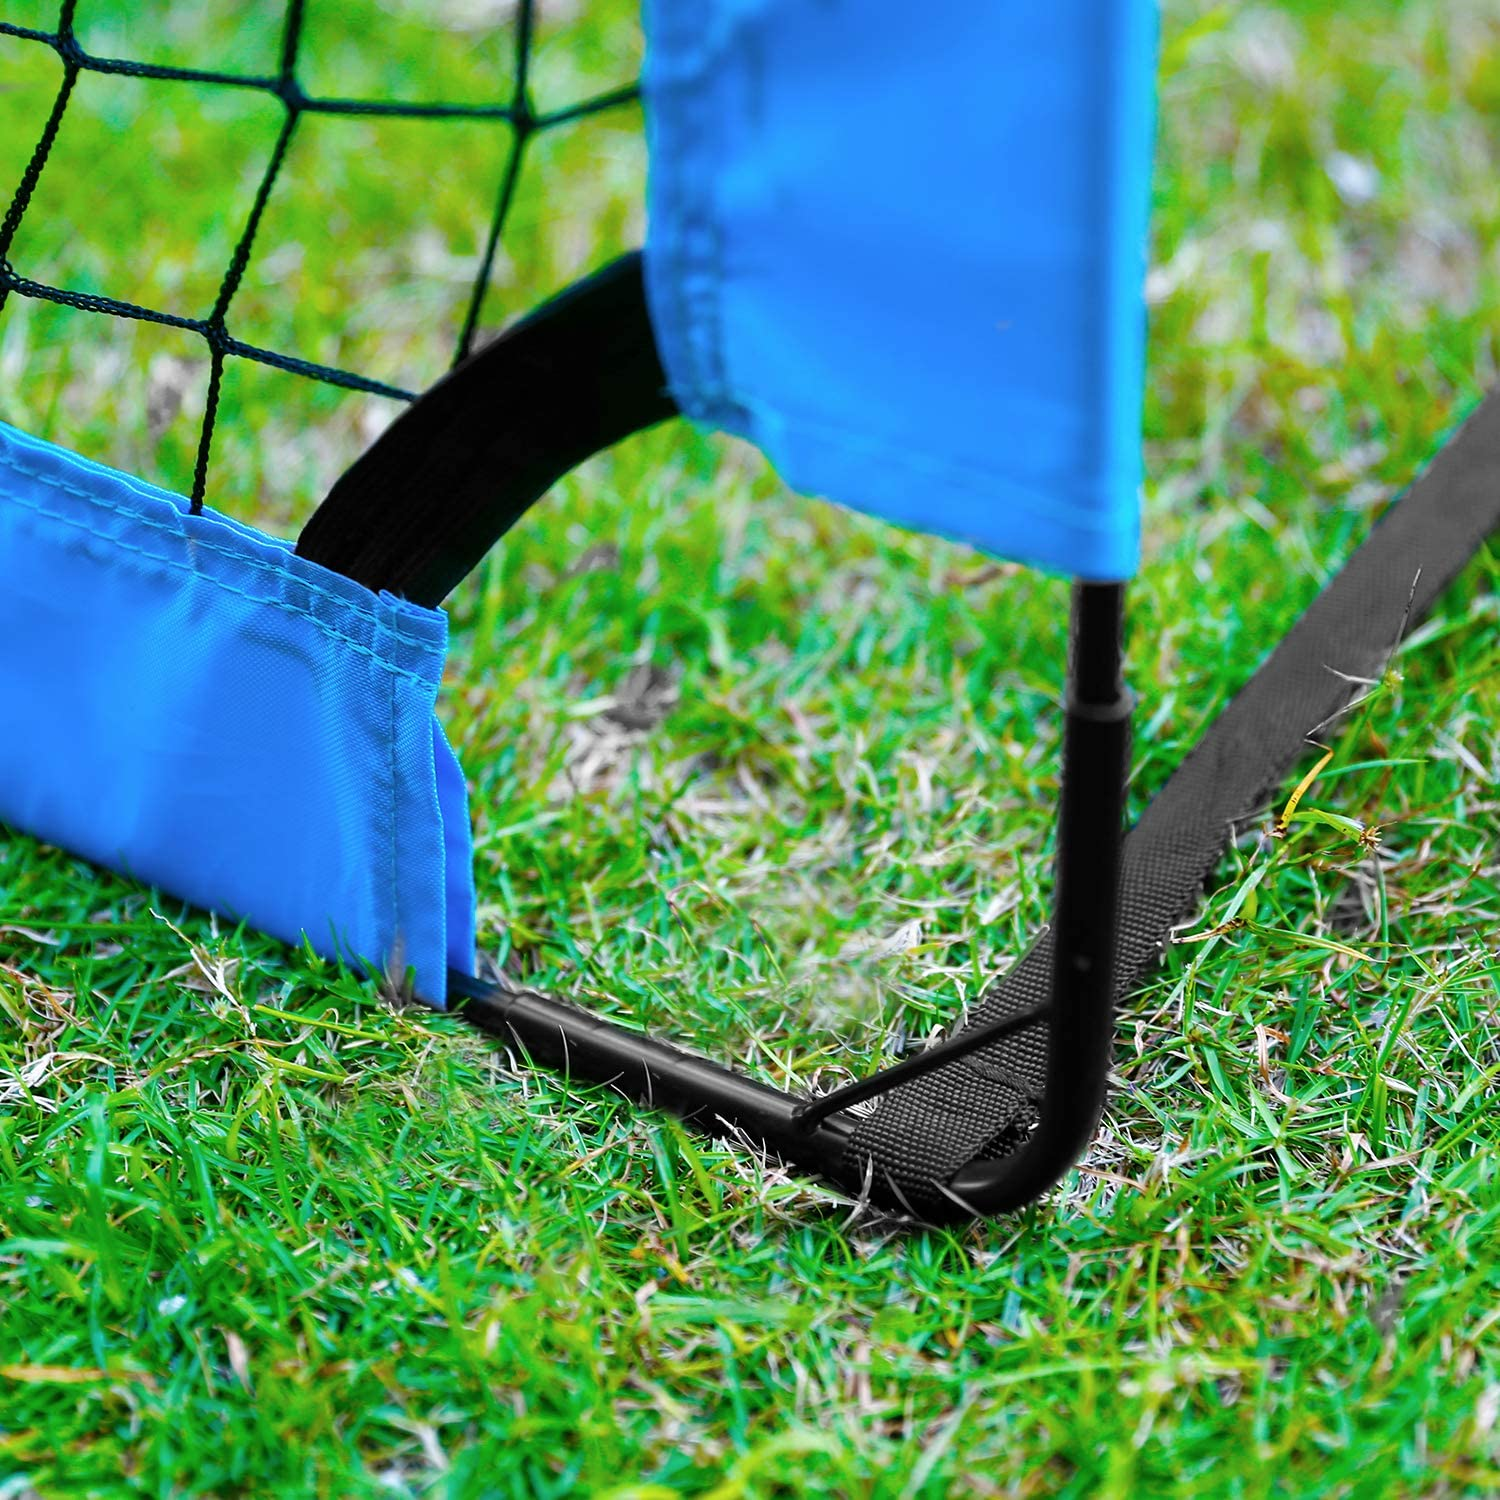 INTEY Soccer Goal Portable Soccer Nets with Carry Bag for Games and Training for Kids and Teens